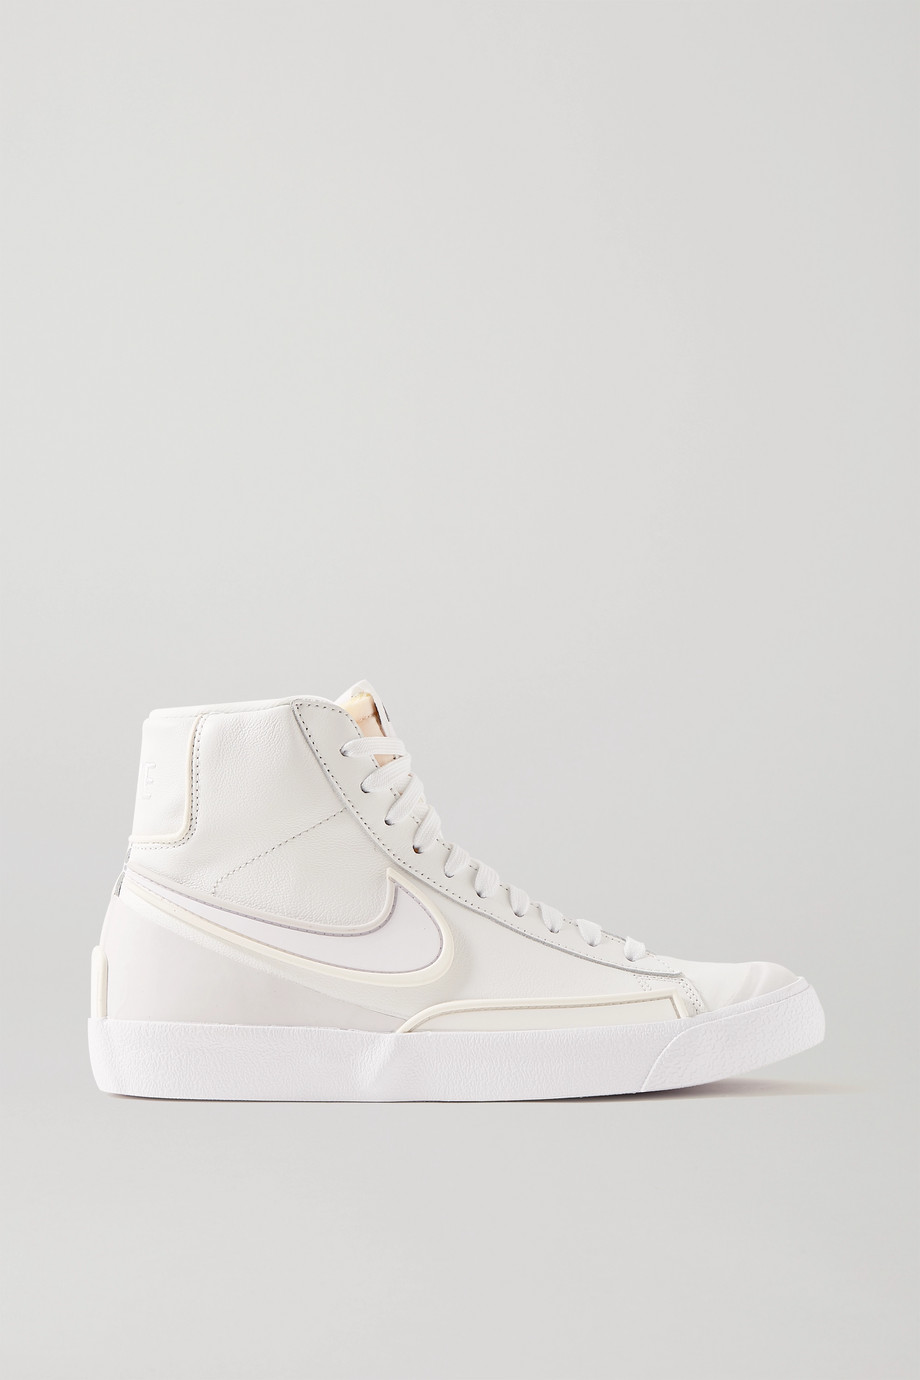 Nike Blazer Mid '77 Infinite textured-leather high-top sneakers